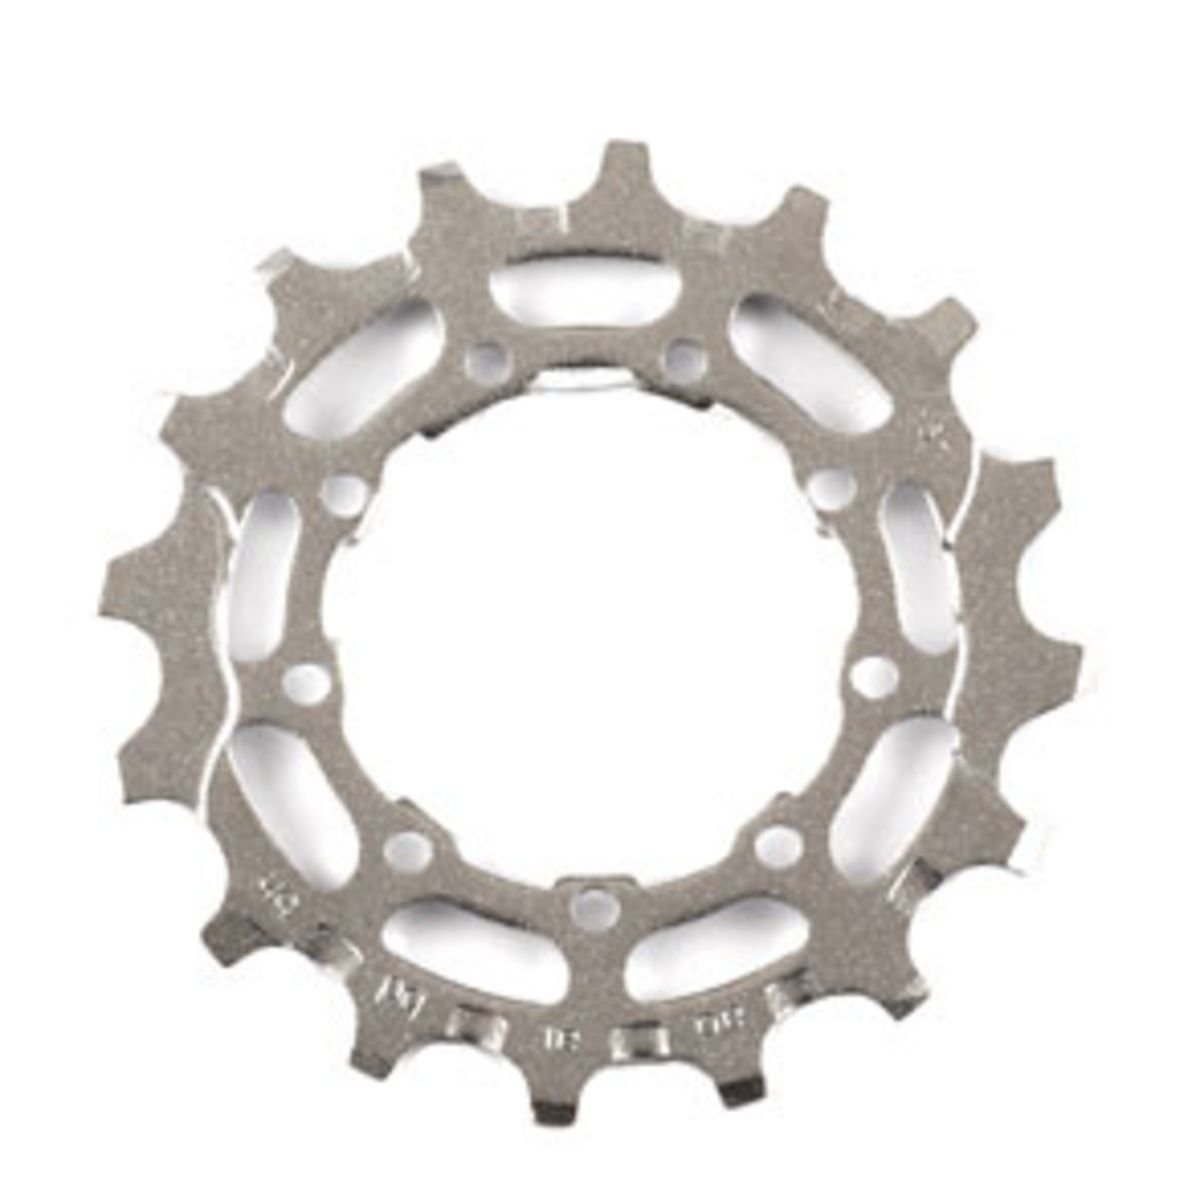 CS-M770 9-speed, 16-tooth replacement sprocket